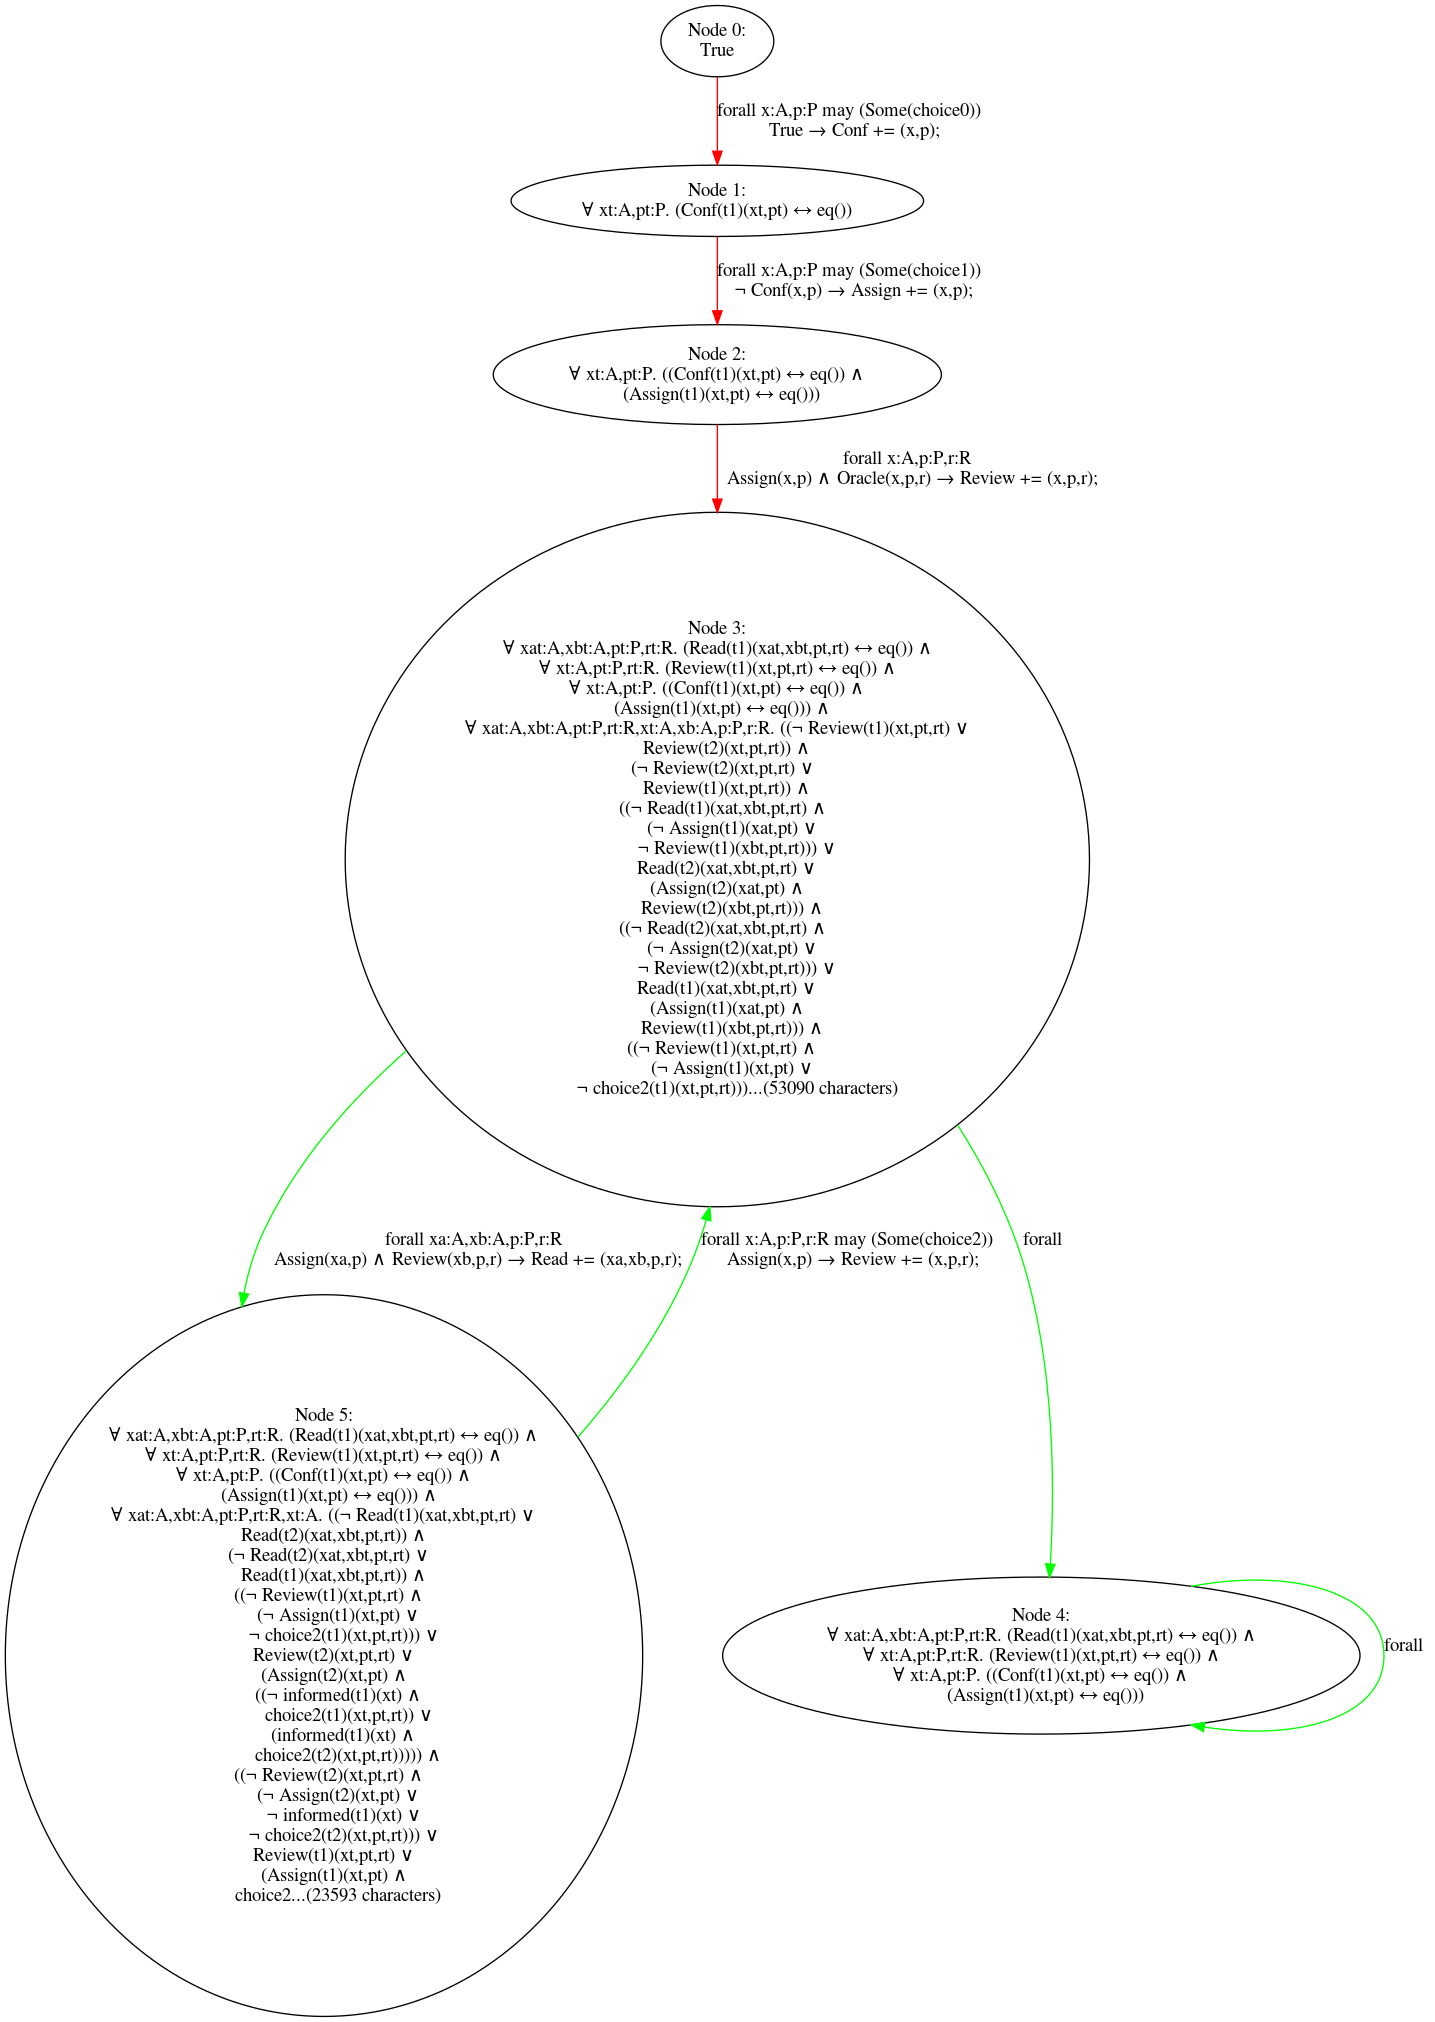 results/nonomitting/conference/conference_causal_alleq_11.png